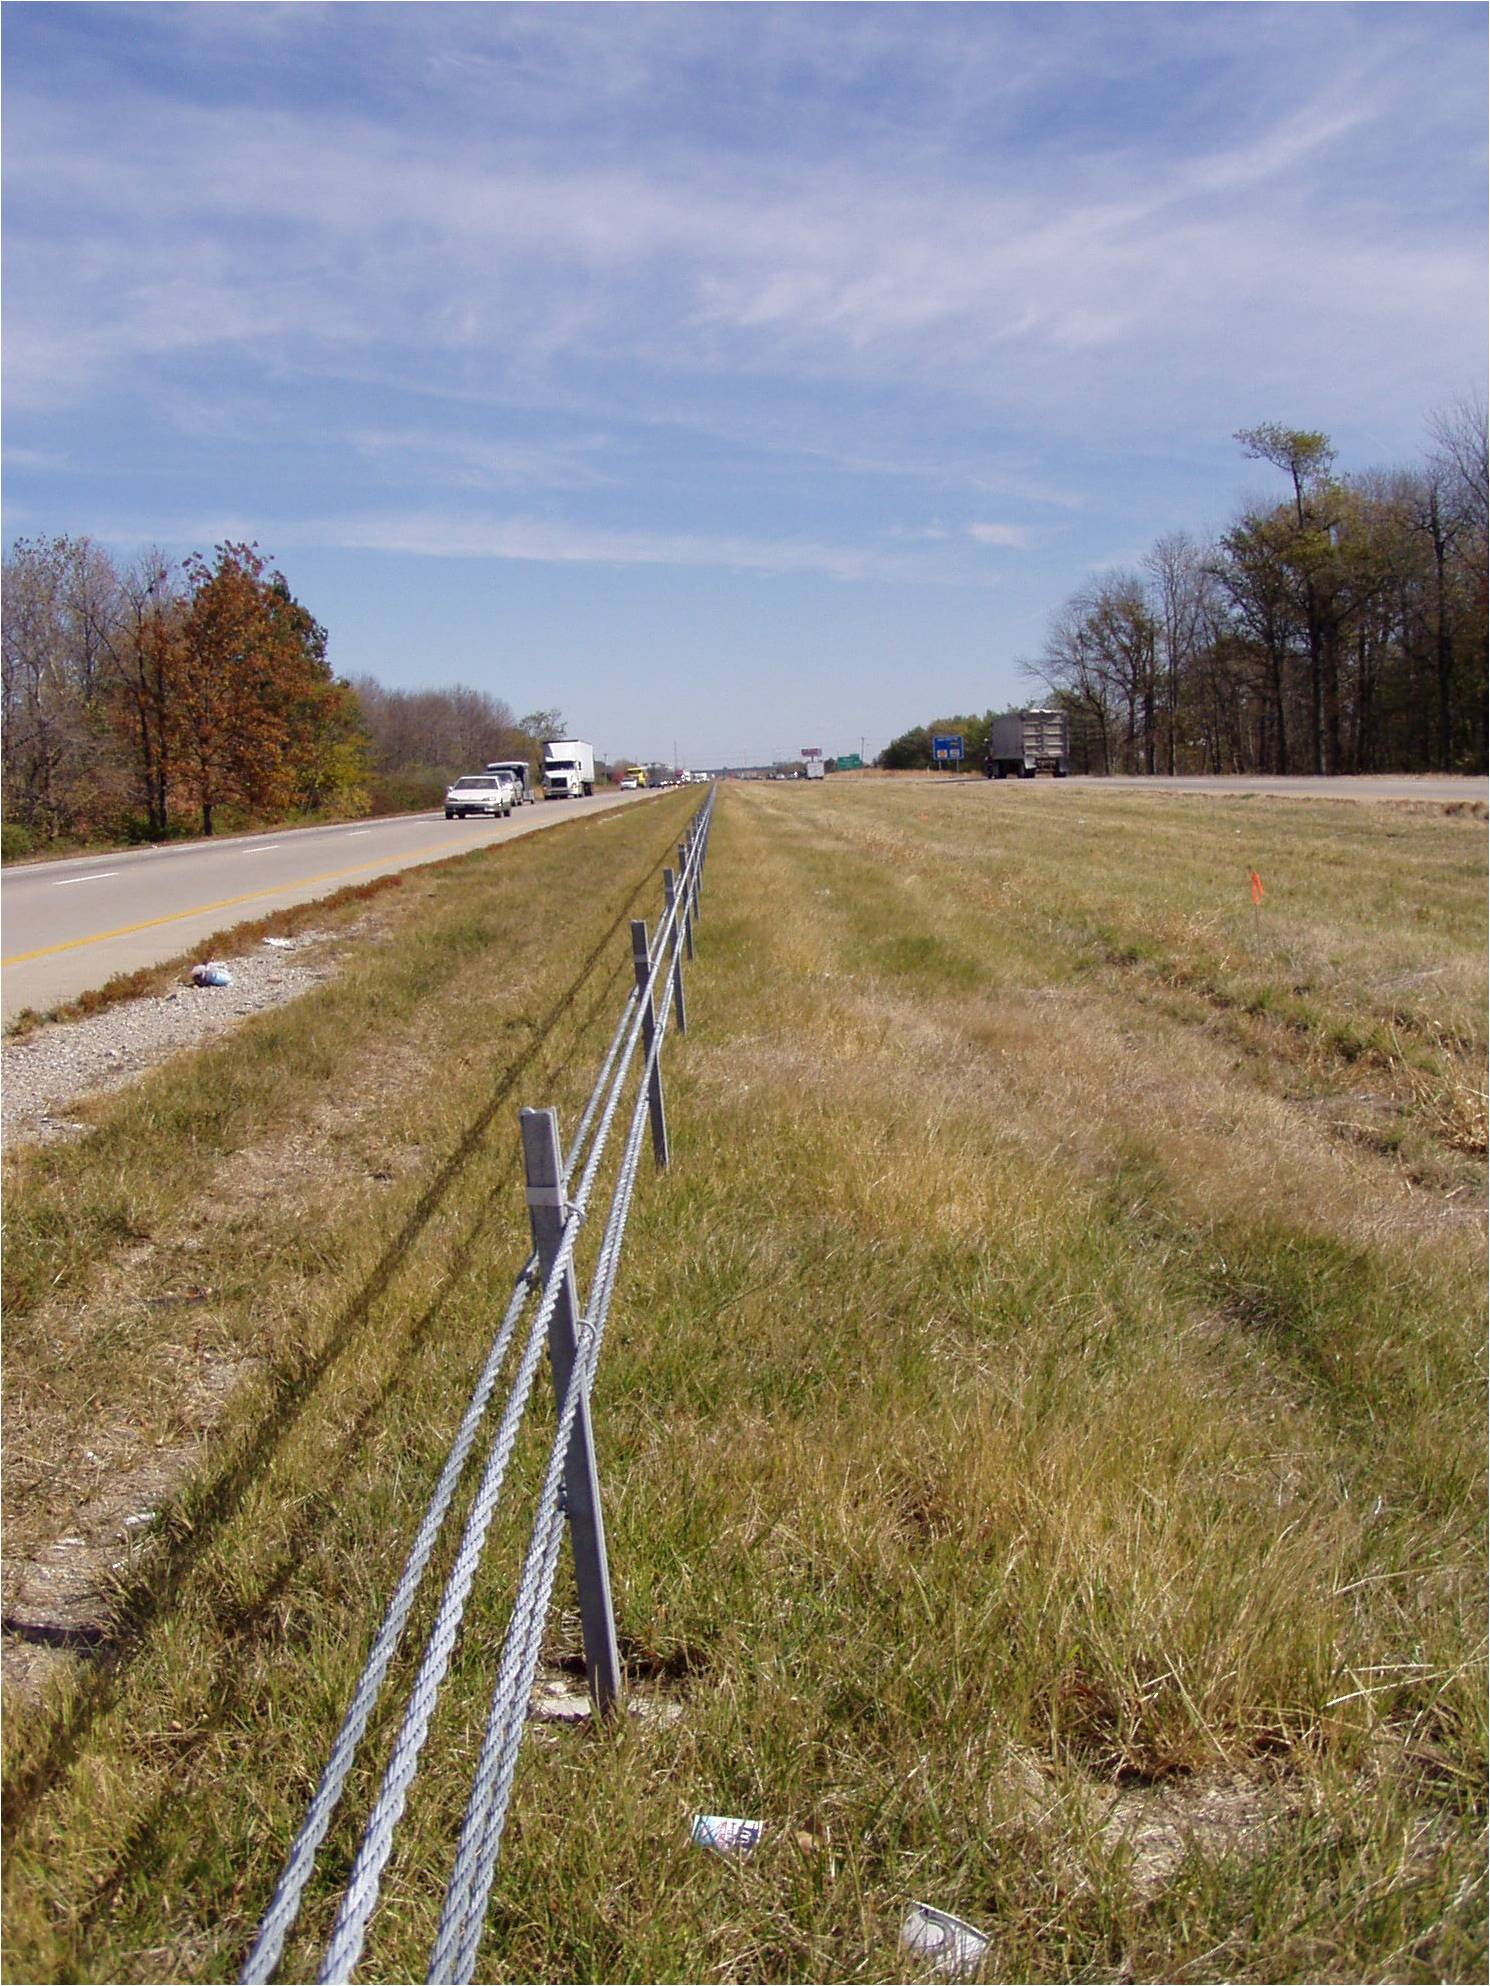 Indot cable barrier systems